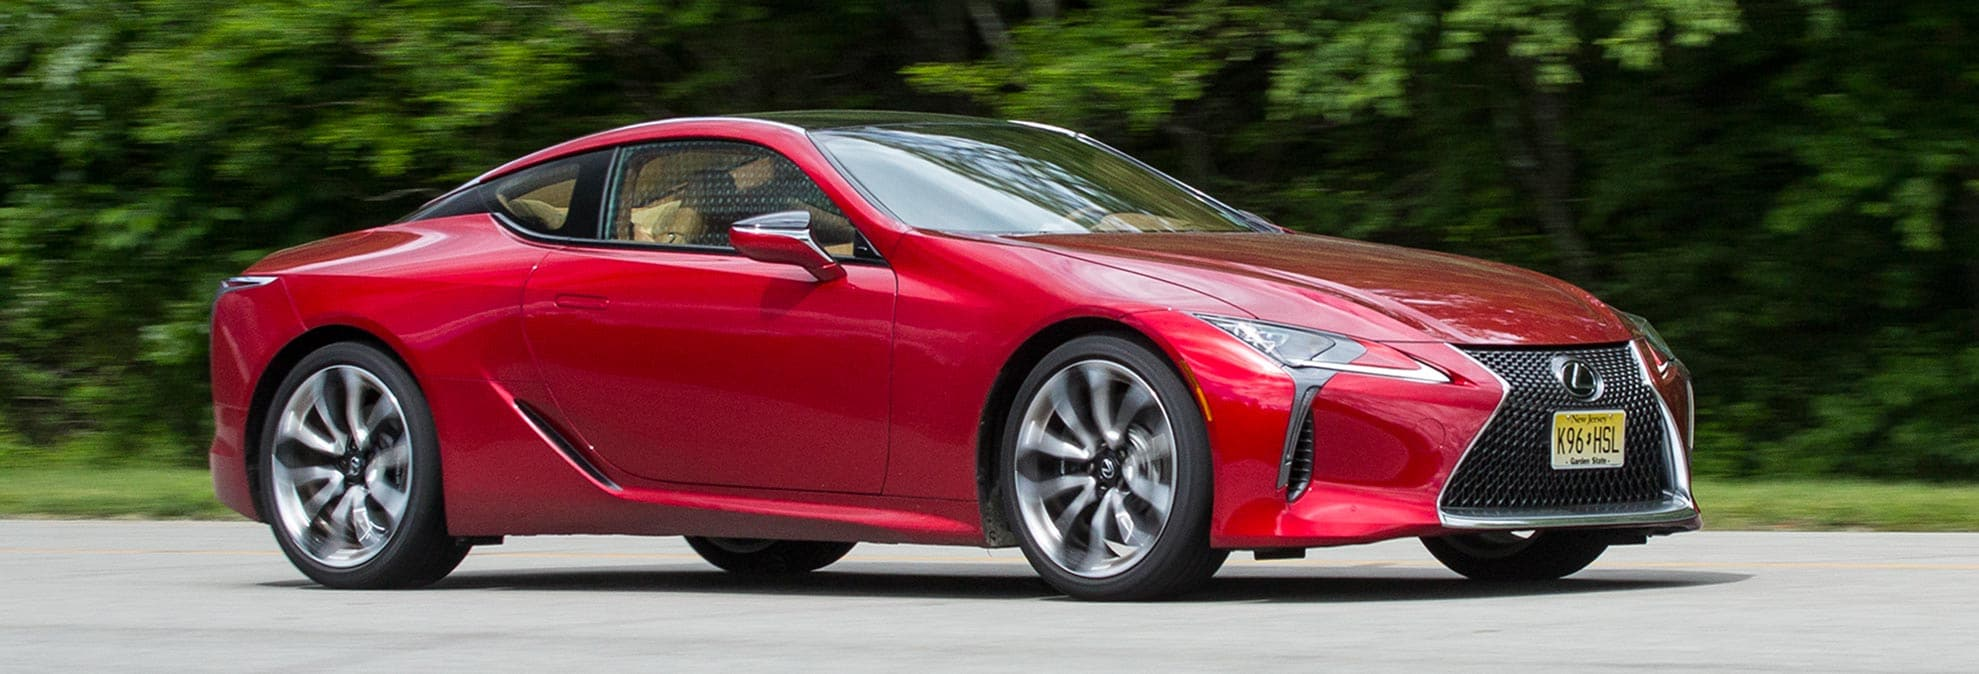 First Drive: Lexus LC500 Sport Coupe - Consumer Reports